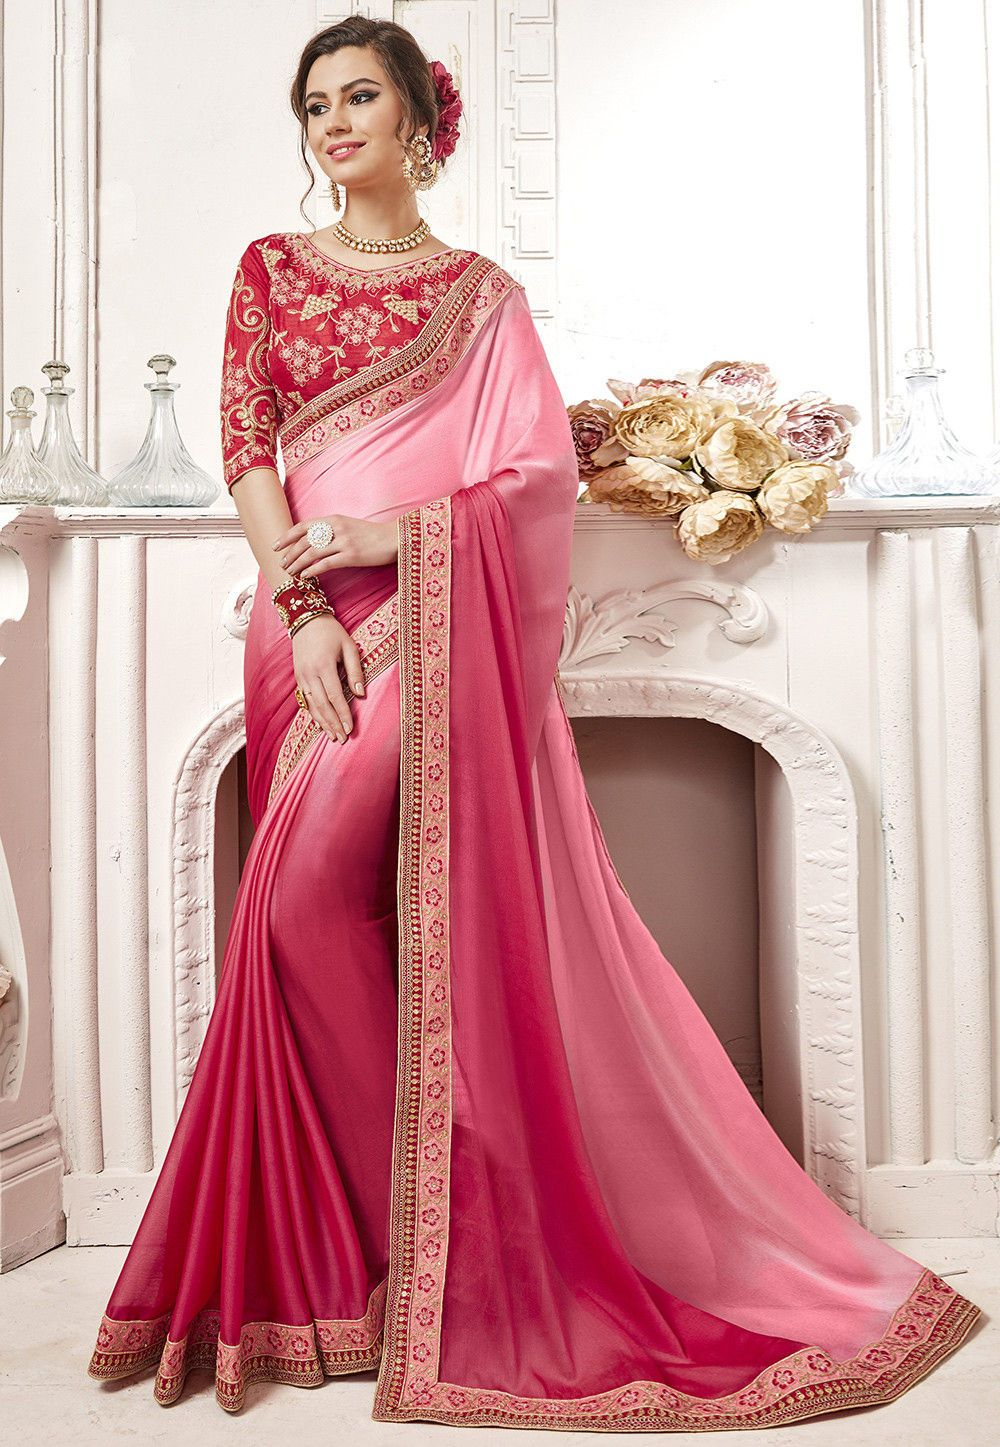 265ea526c5bfed Buy Ombre Satin Chiffon Saree in Pink Ombre online, Item code: SKK22824,  Color: Pink, Occasion: Party, Work: Contemporary, Resham, Stone Work, Zari,  ...